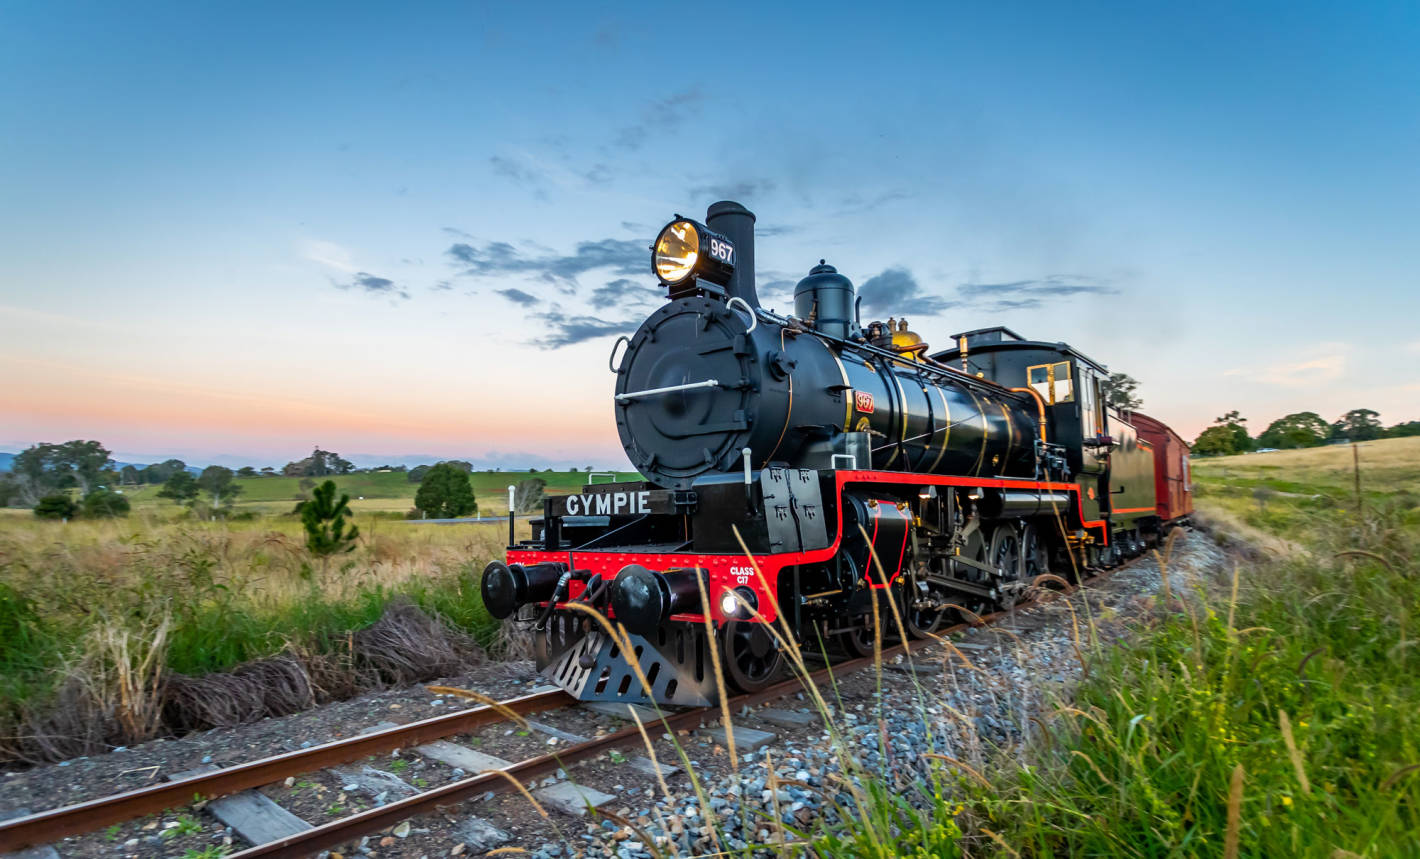 10 things to do in Gympie